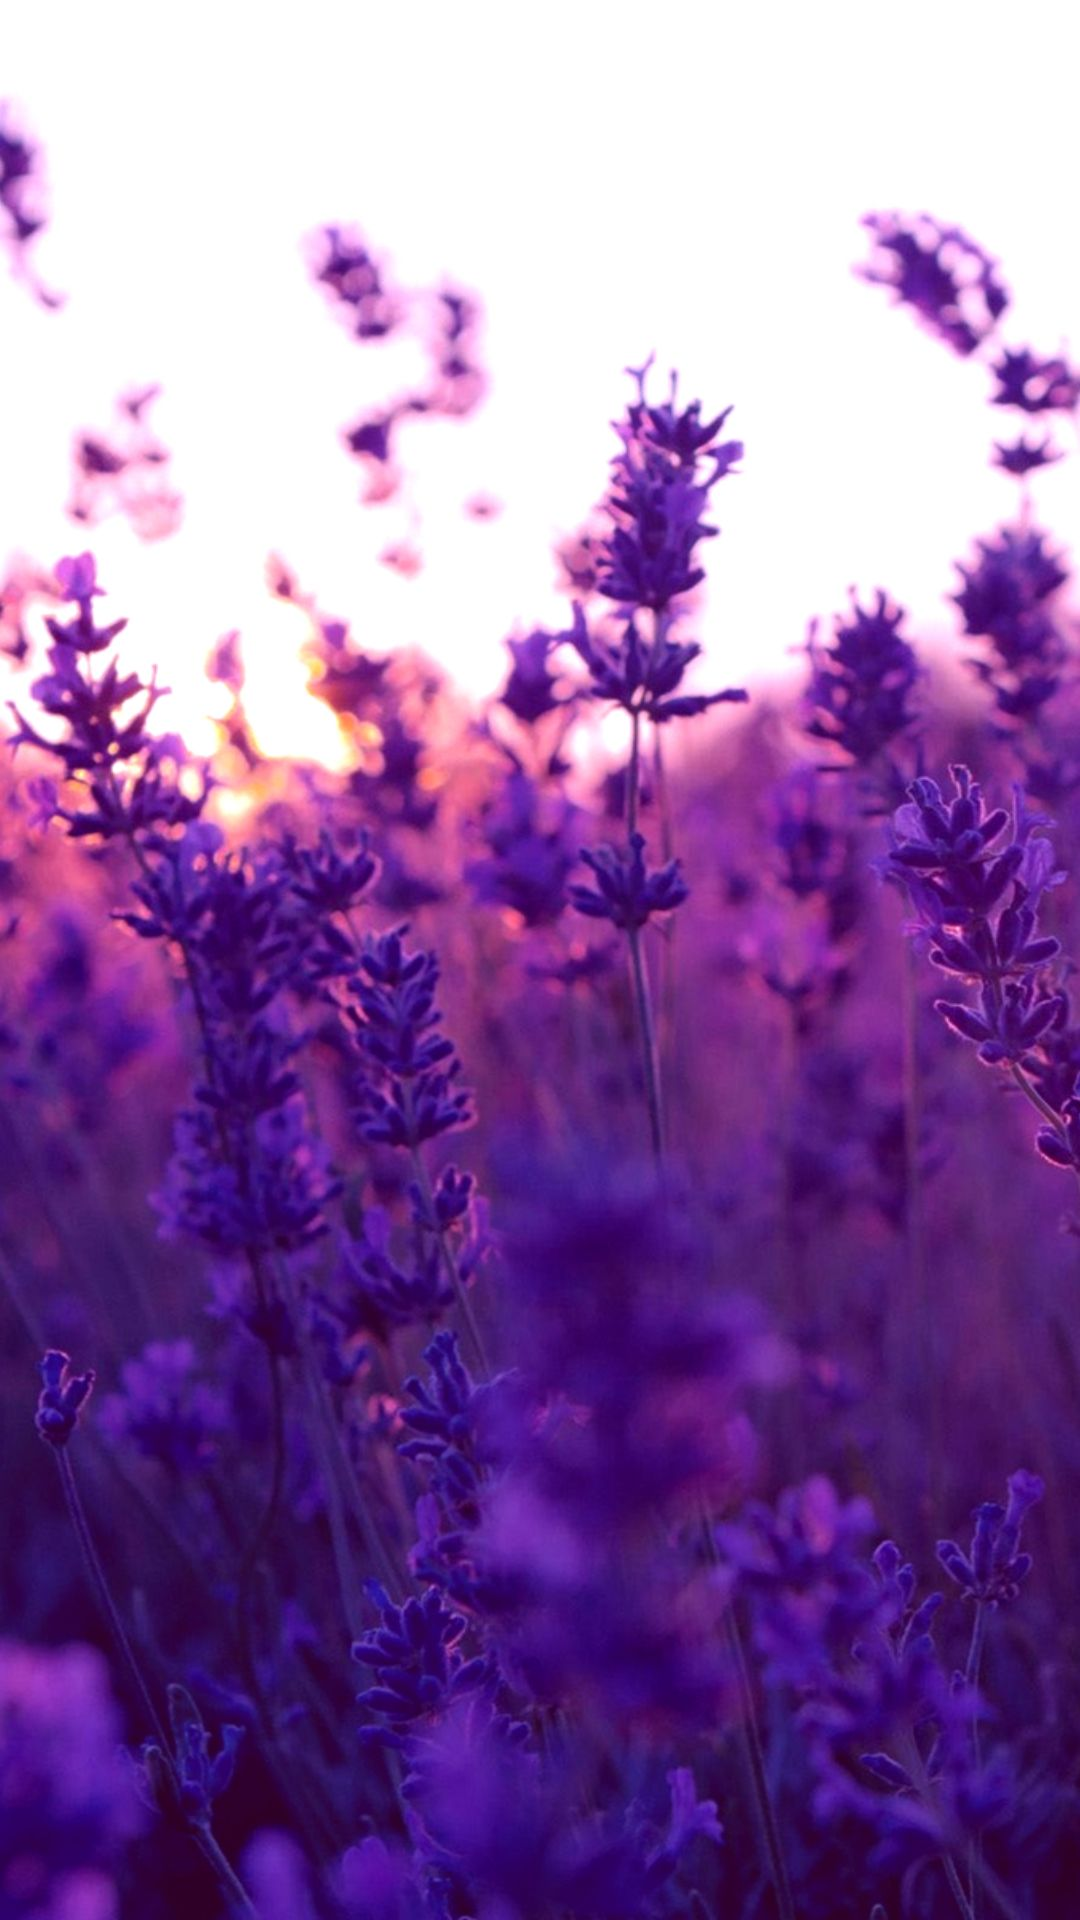 How to Add Lavender iPhone Wallpaper